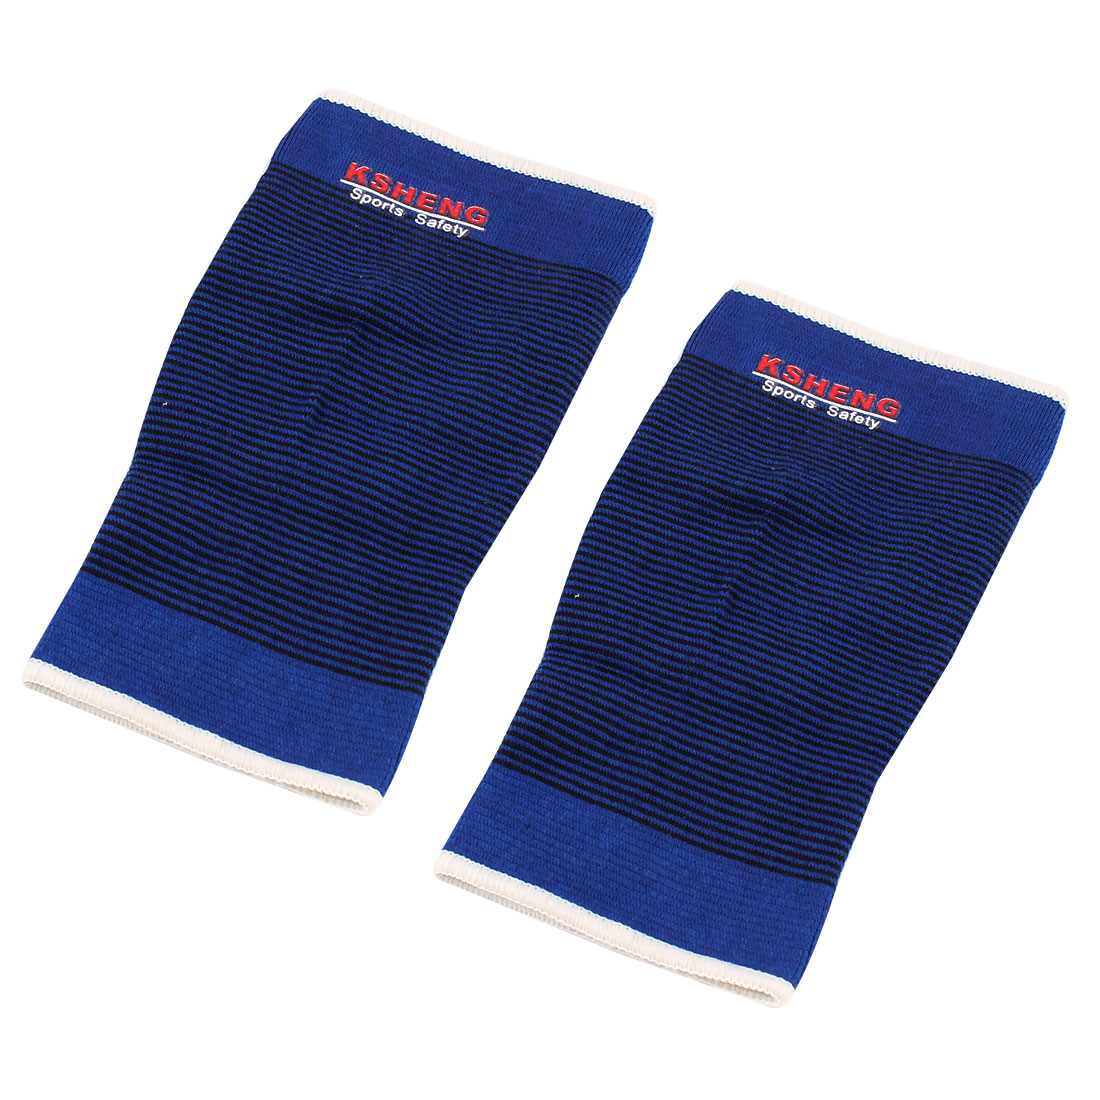 Basketball Football Sports Black Blue Stripes Elastic Hand Arms Elbow Supports Protectors Guards 2pcs